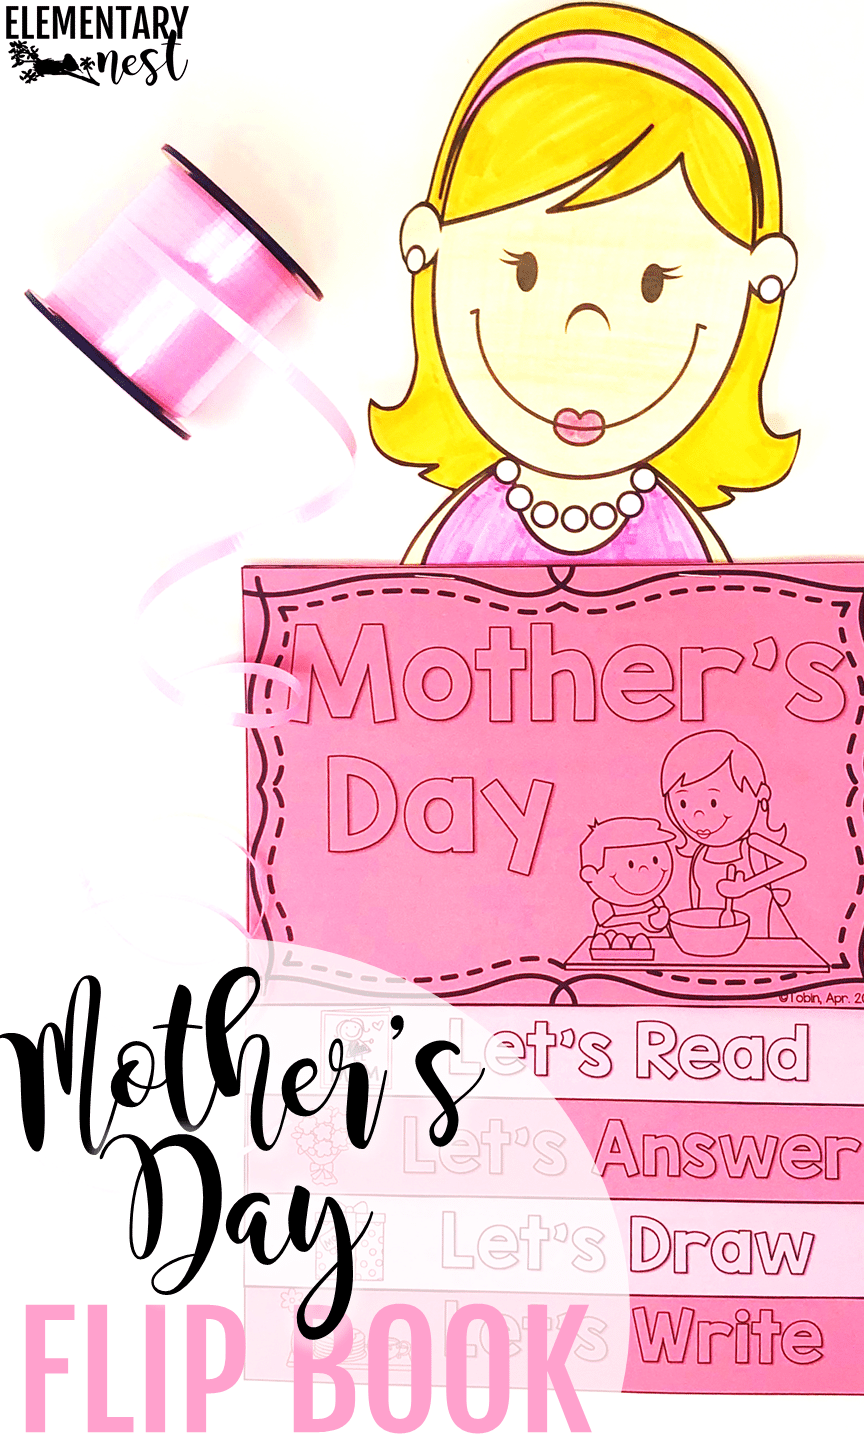 Mother's Day activ reading activity with follow-up Mother's Day comprehension and writing activities.